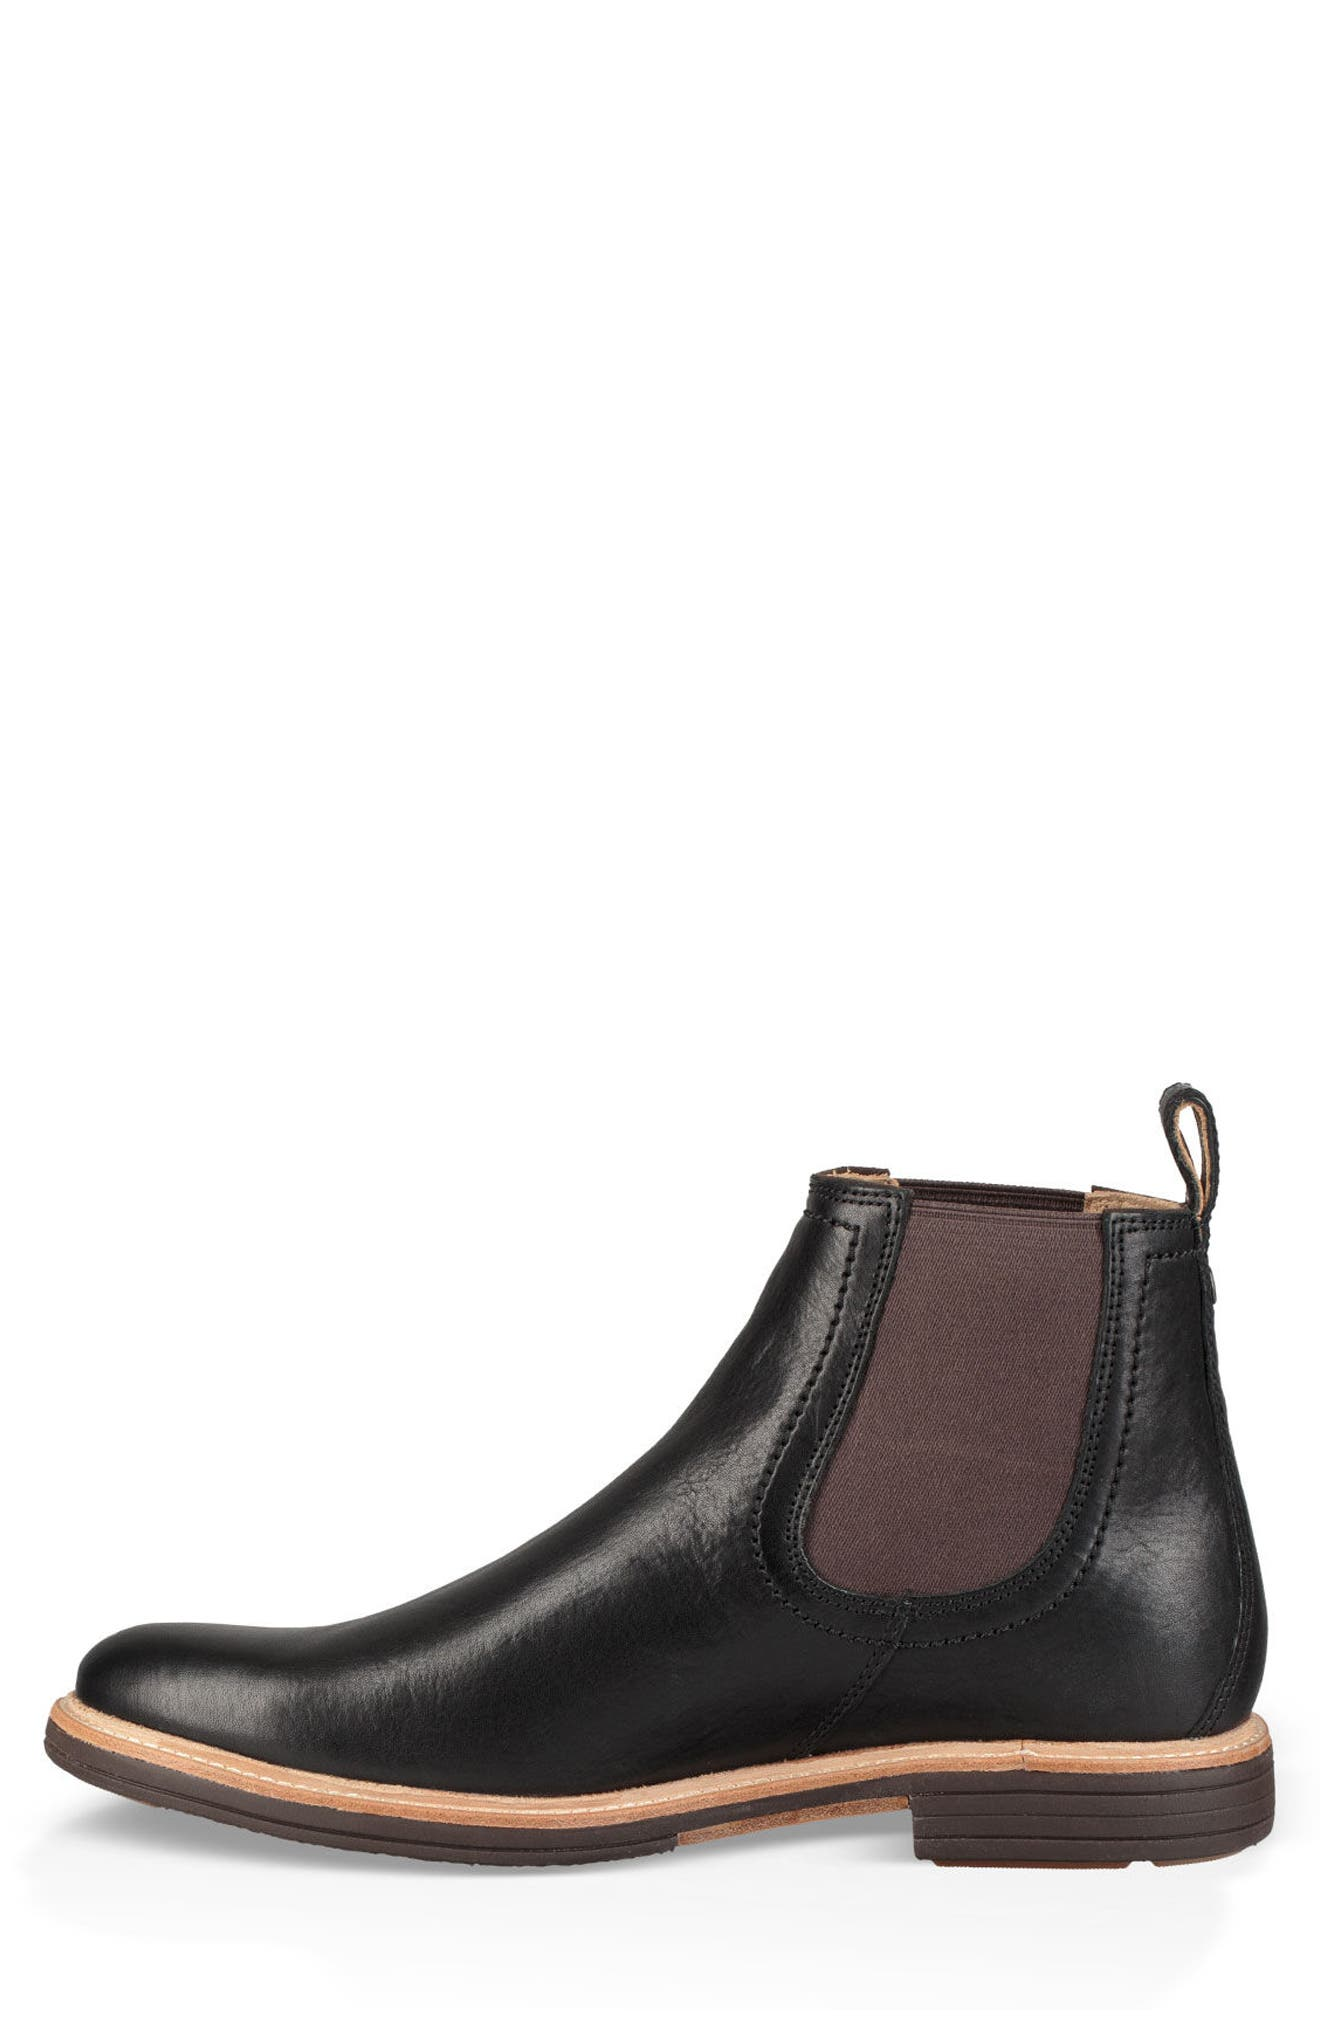 UGG<SUP>®</SUP>, Baldvin Chelsea Boot, Alternate thumbnail 3, color, BLACK LEATHER/SUEDE